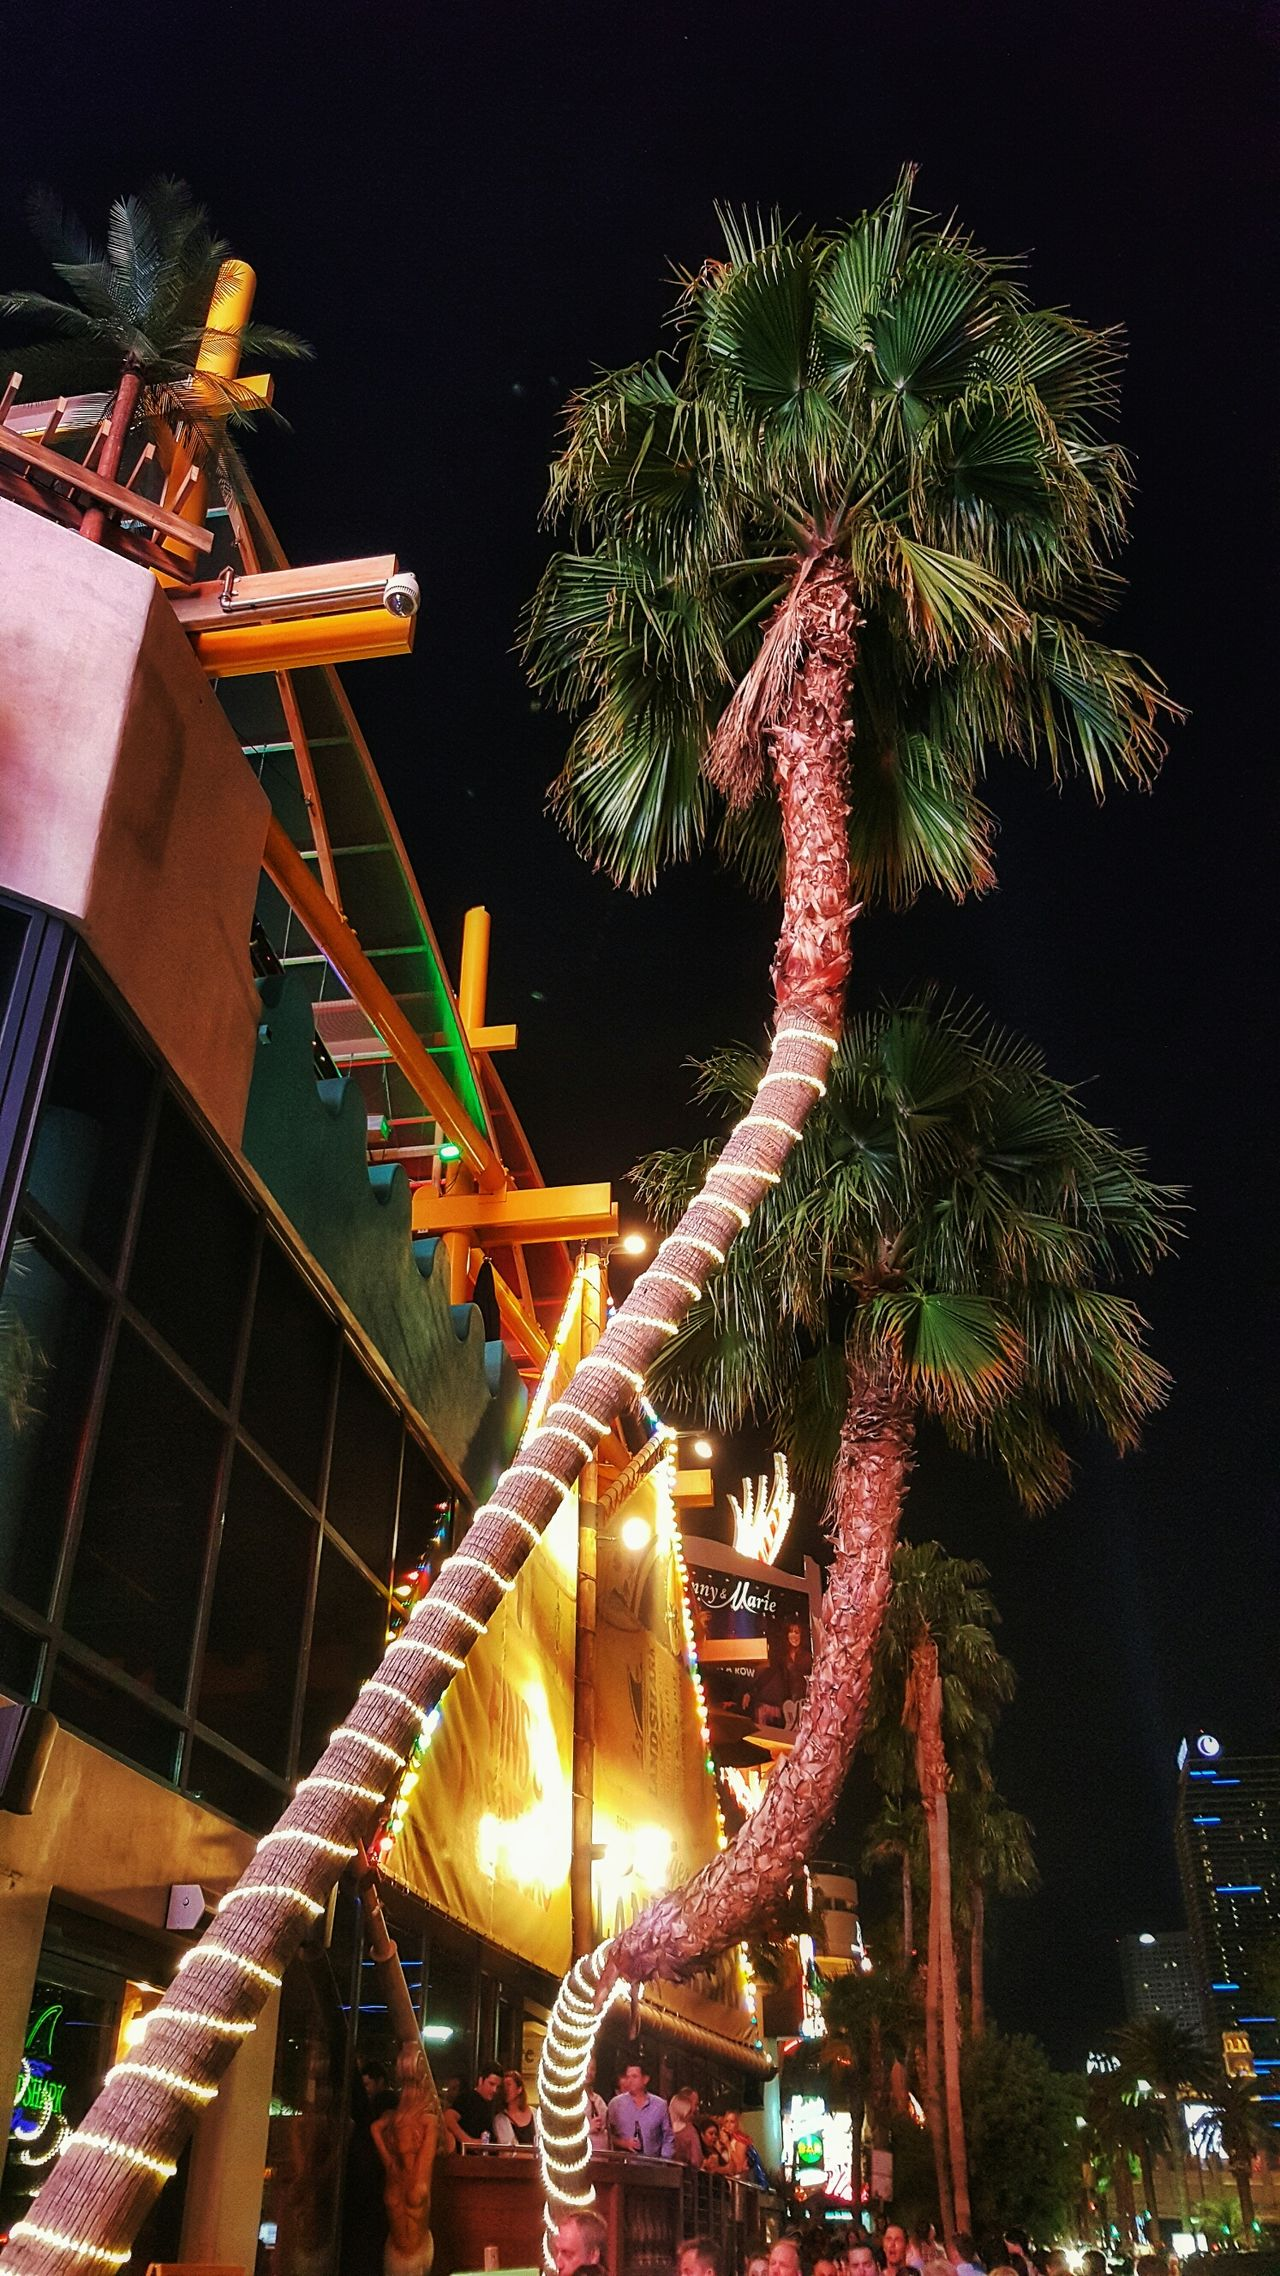 Cities At Night Palm Trees Las Vegas Blvd Las Vegas At Night Las Vegas Casino